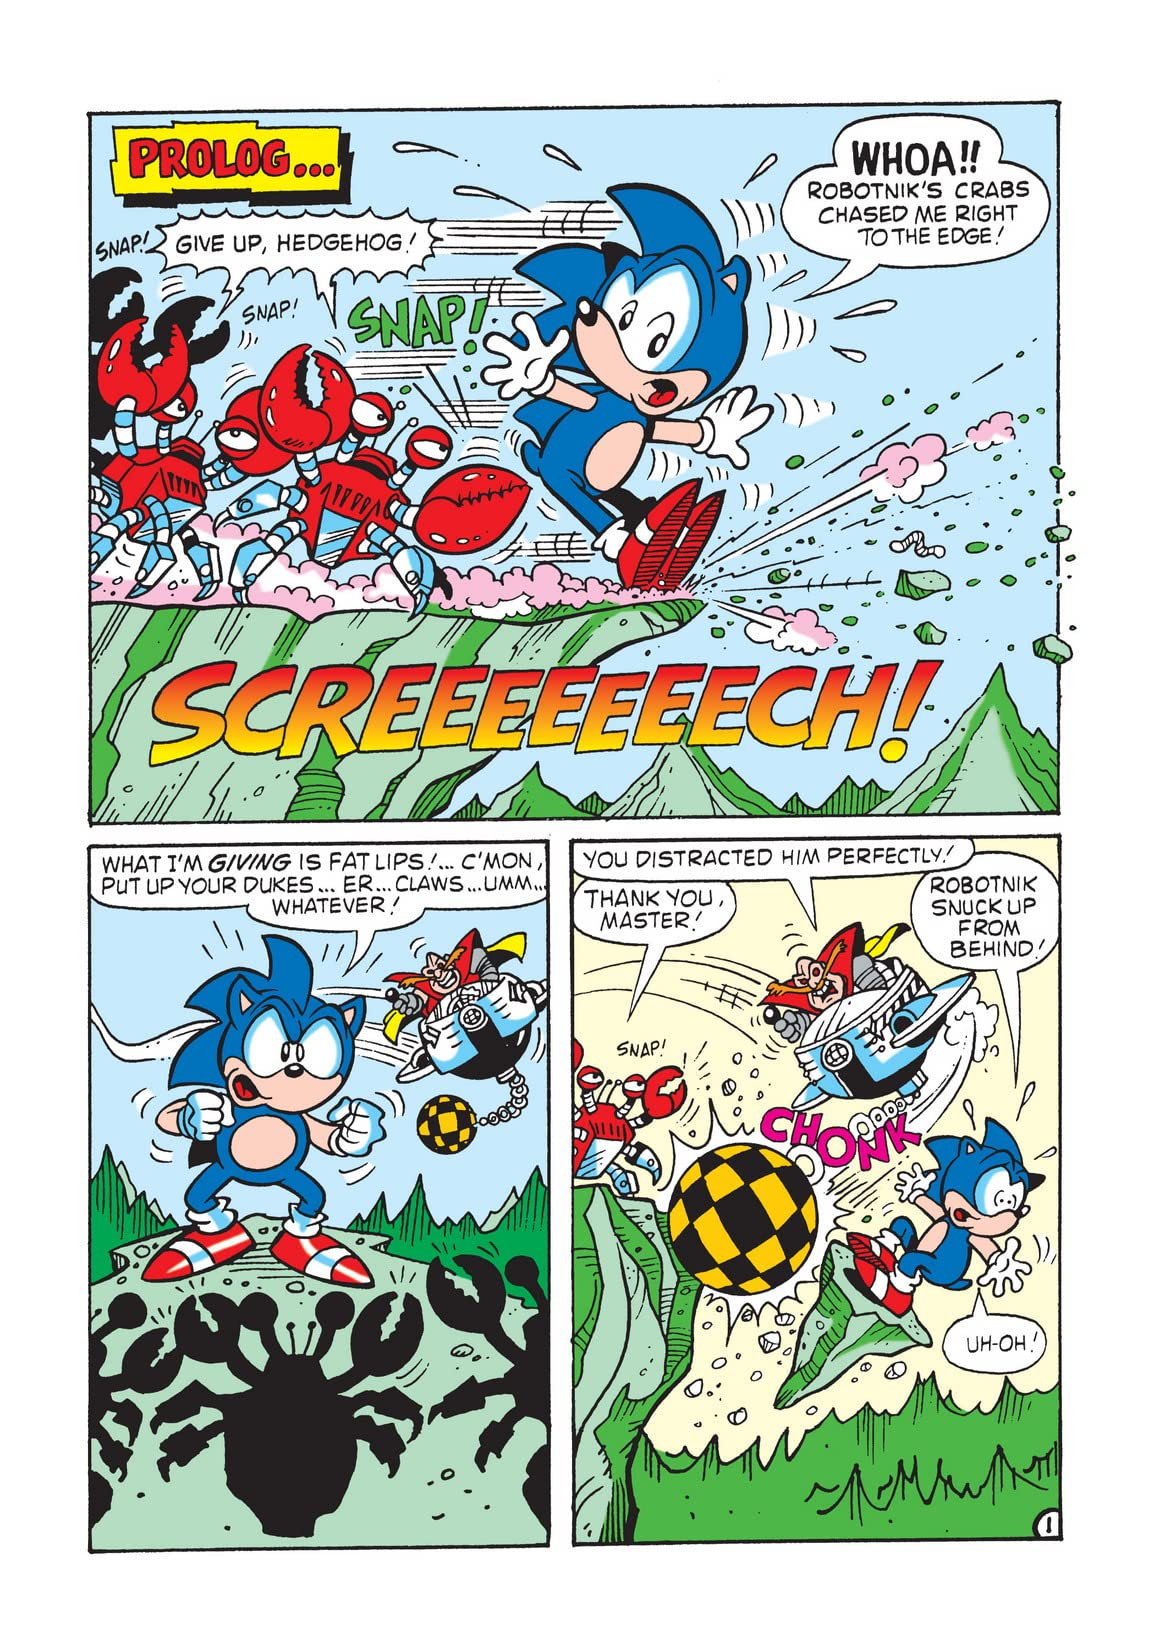 Sonic the Hedgehog Mini Series #3